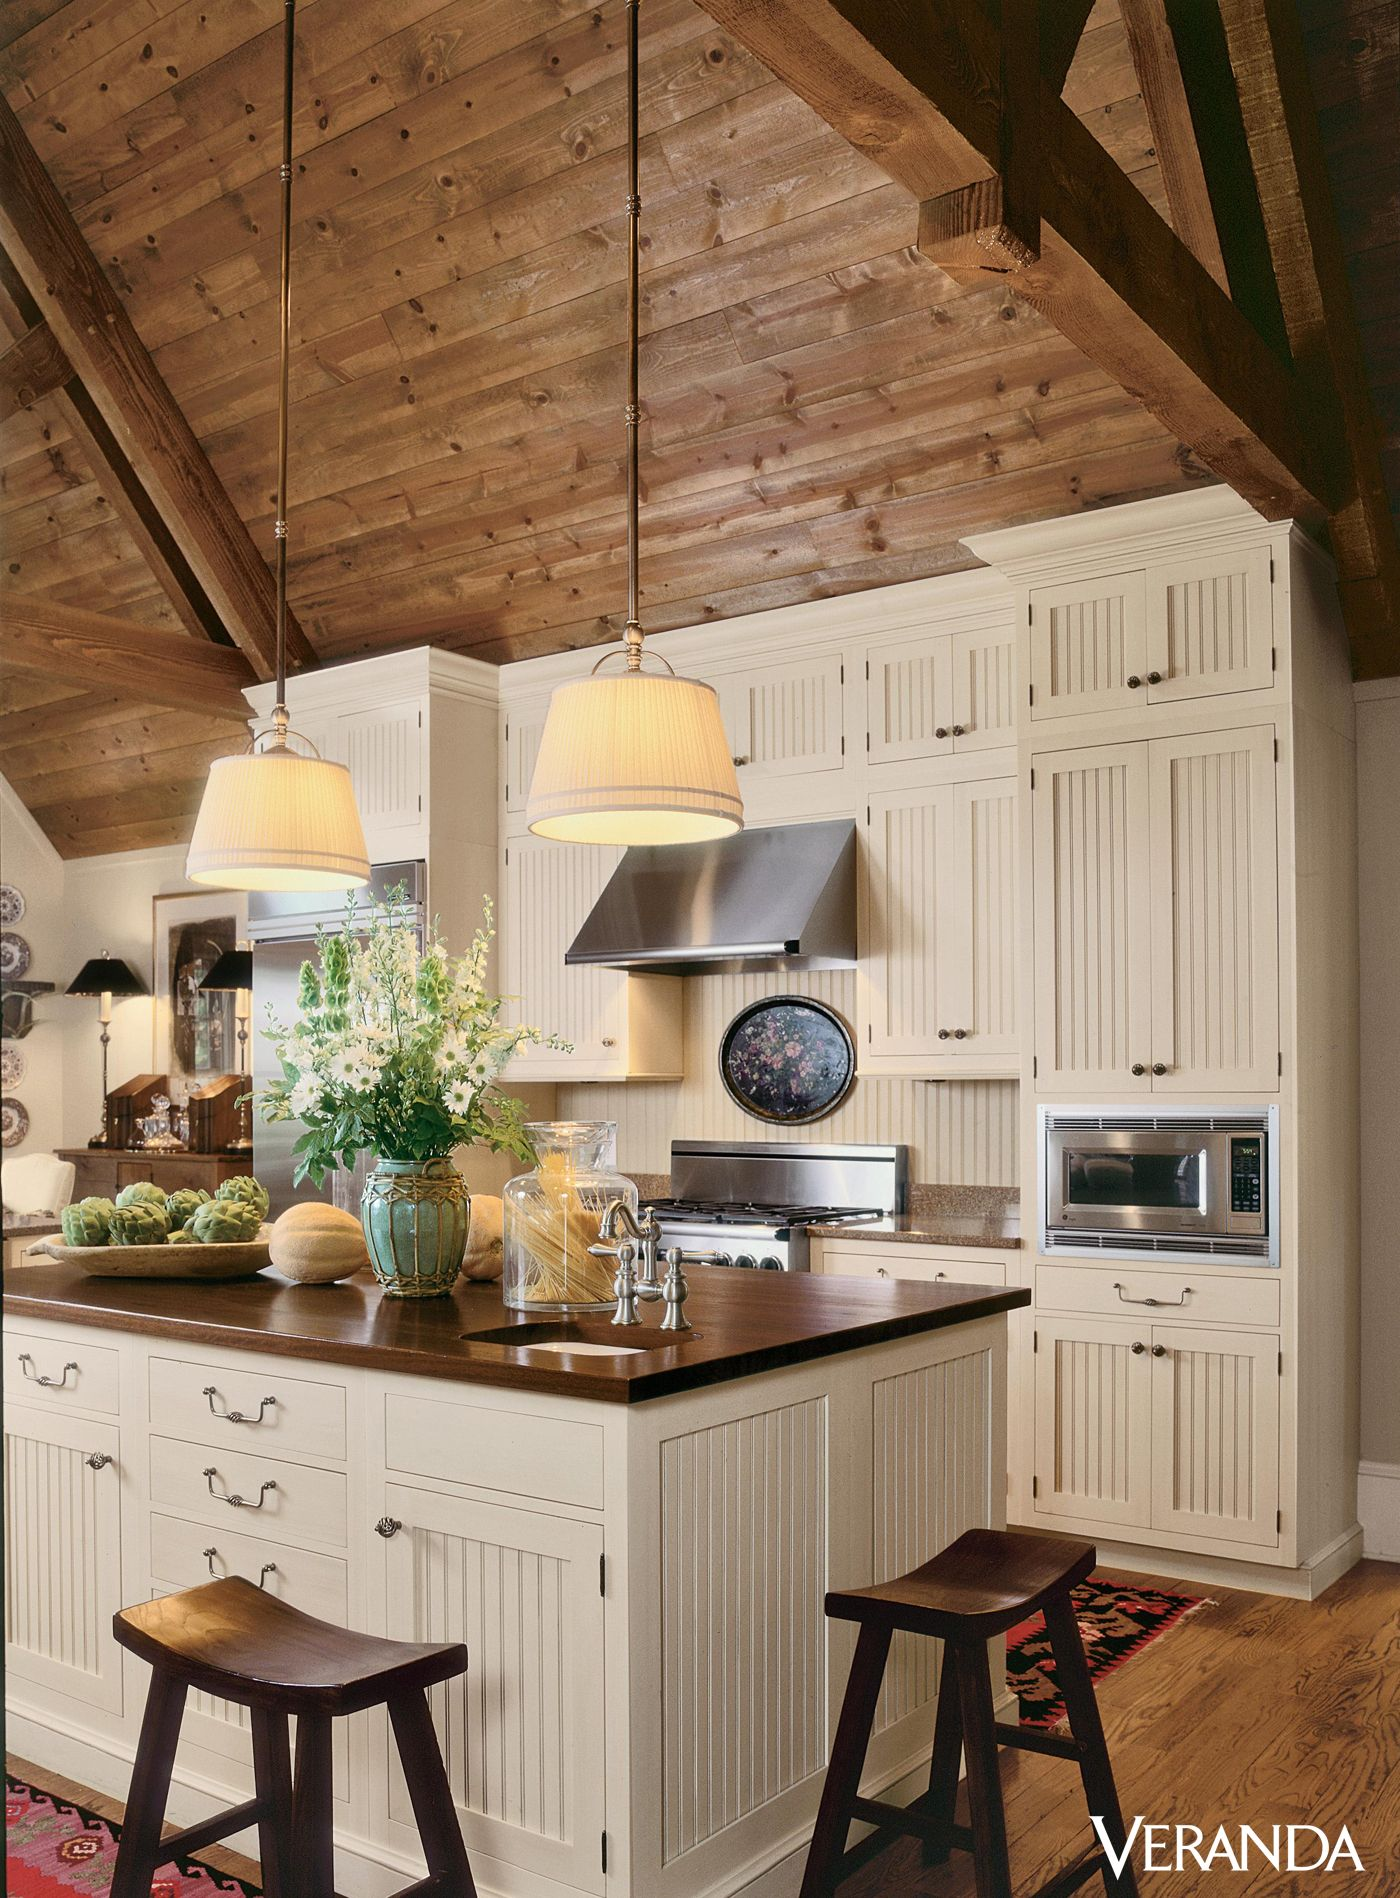 Knotty pine kitchen ceiling my vintage kitchen ideas - 14 Inspiring One Of A Kind Ceilings